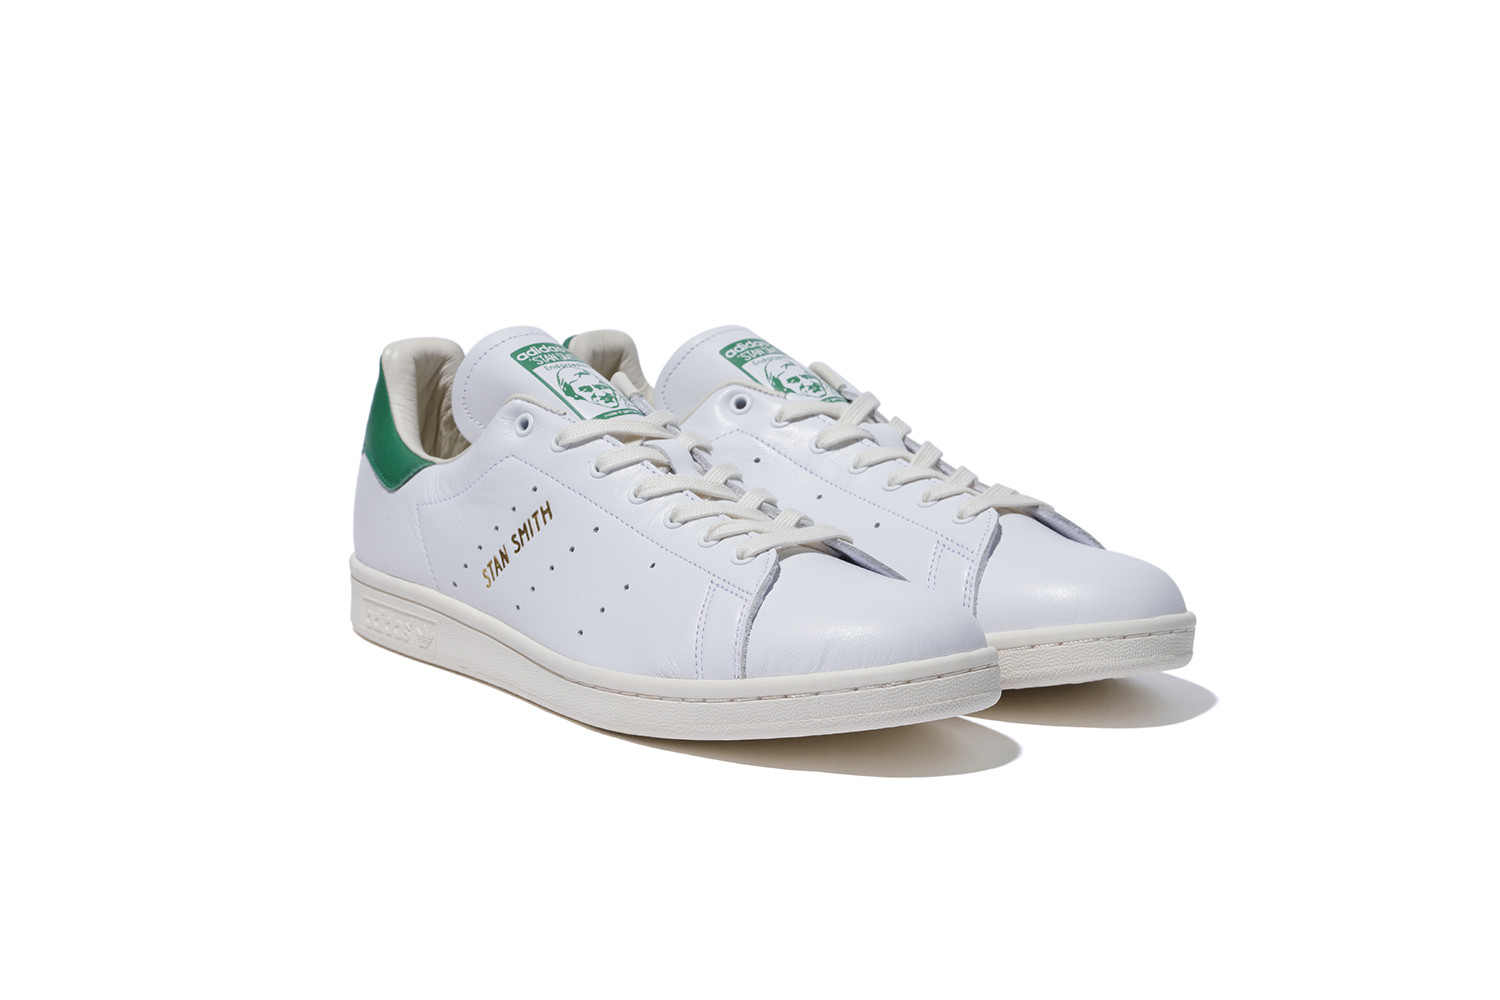 ▲Stan Smith「Made in Germany」。(圖/翻攝自Adidas Originals、Puma)